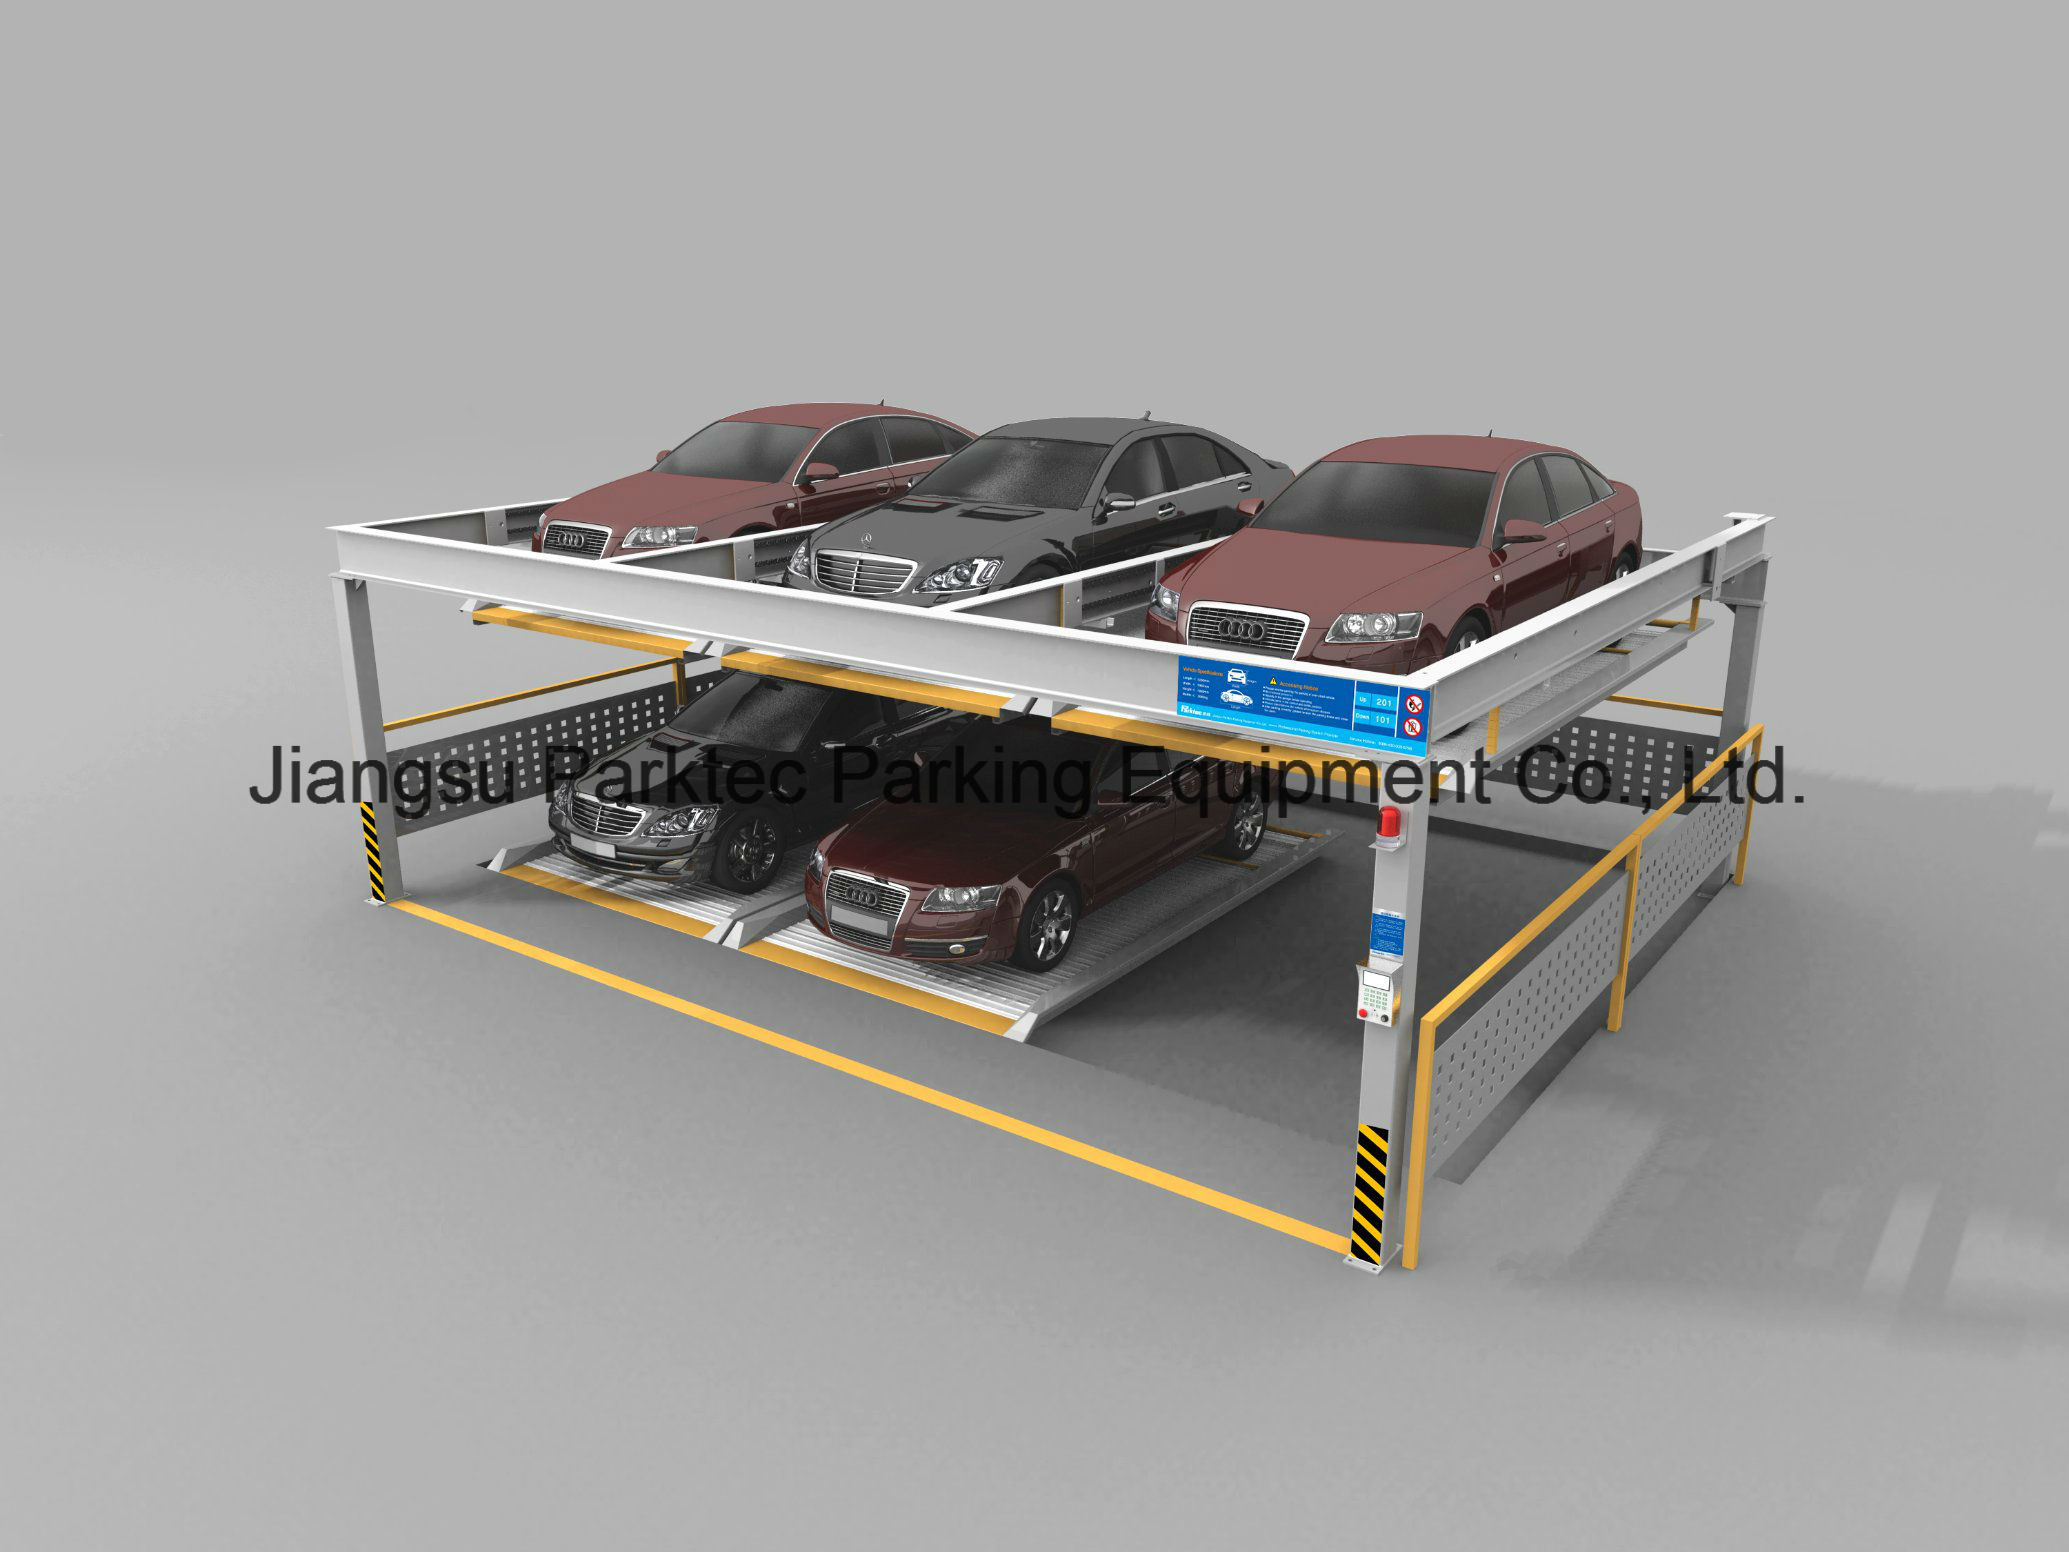 2-Layer Puzzle Parking System